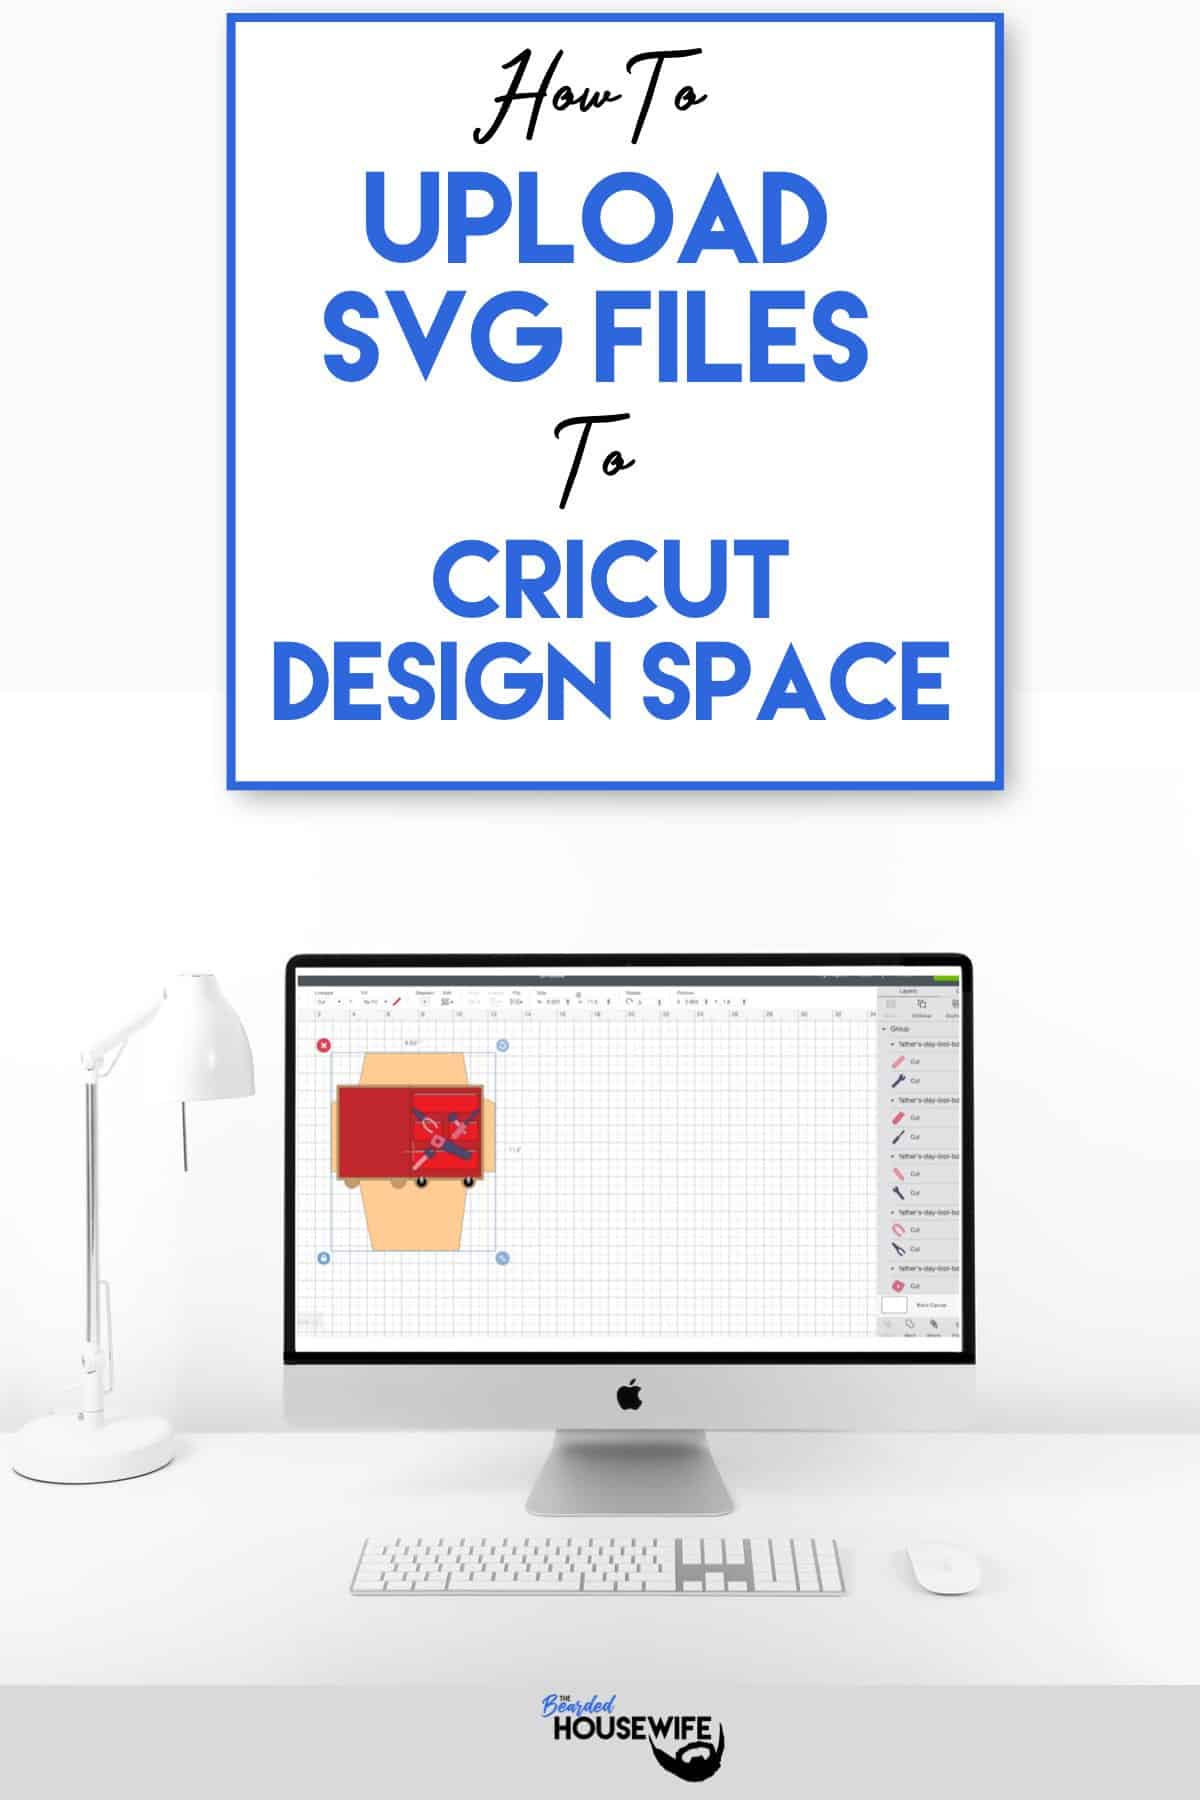 Upload Svg Files To Cricut Design Space The Bearded Housewife